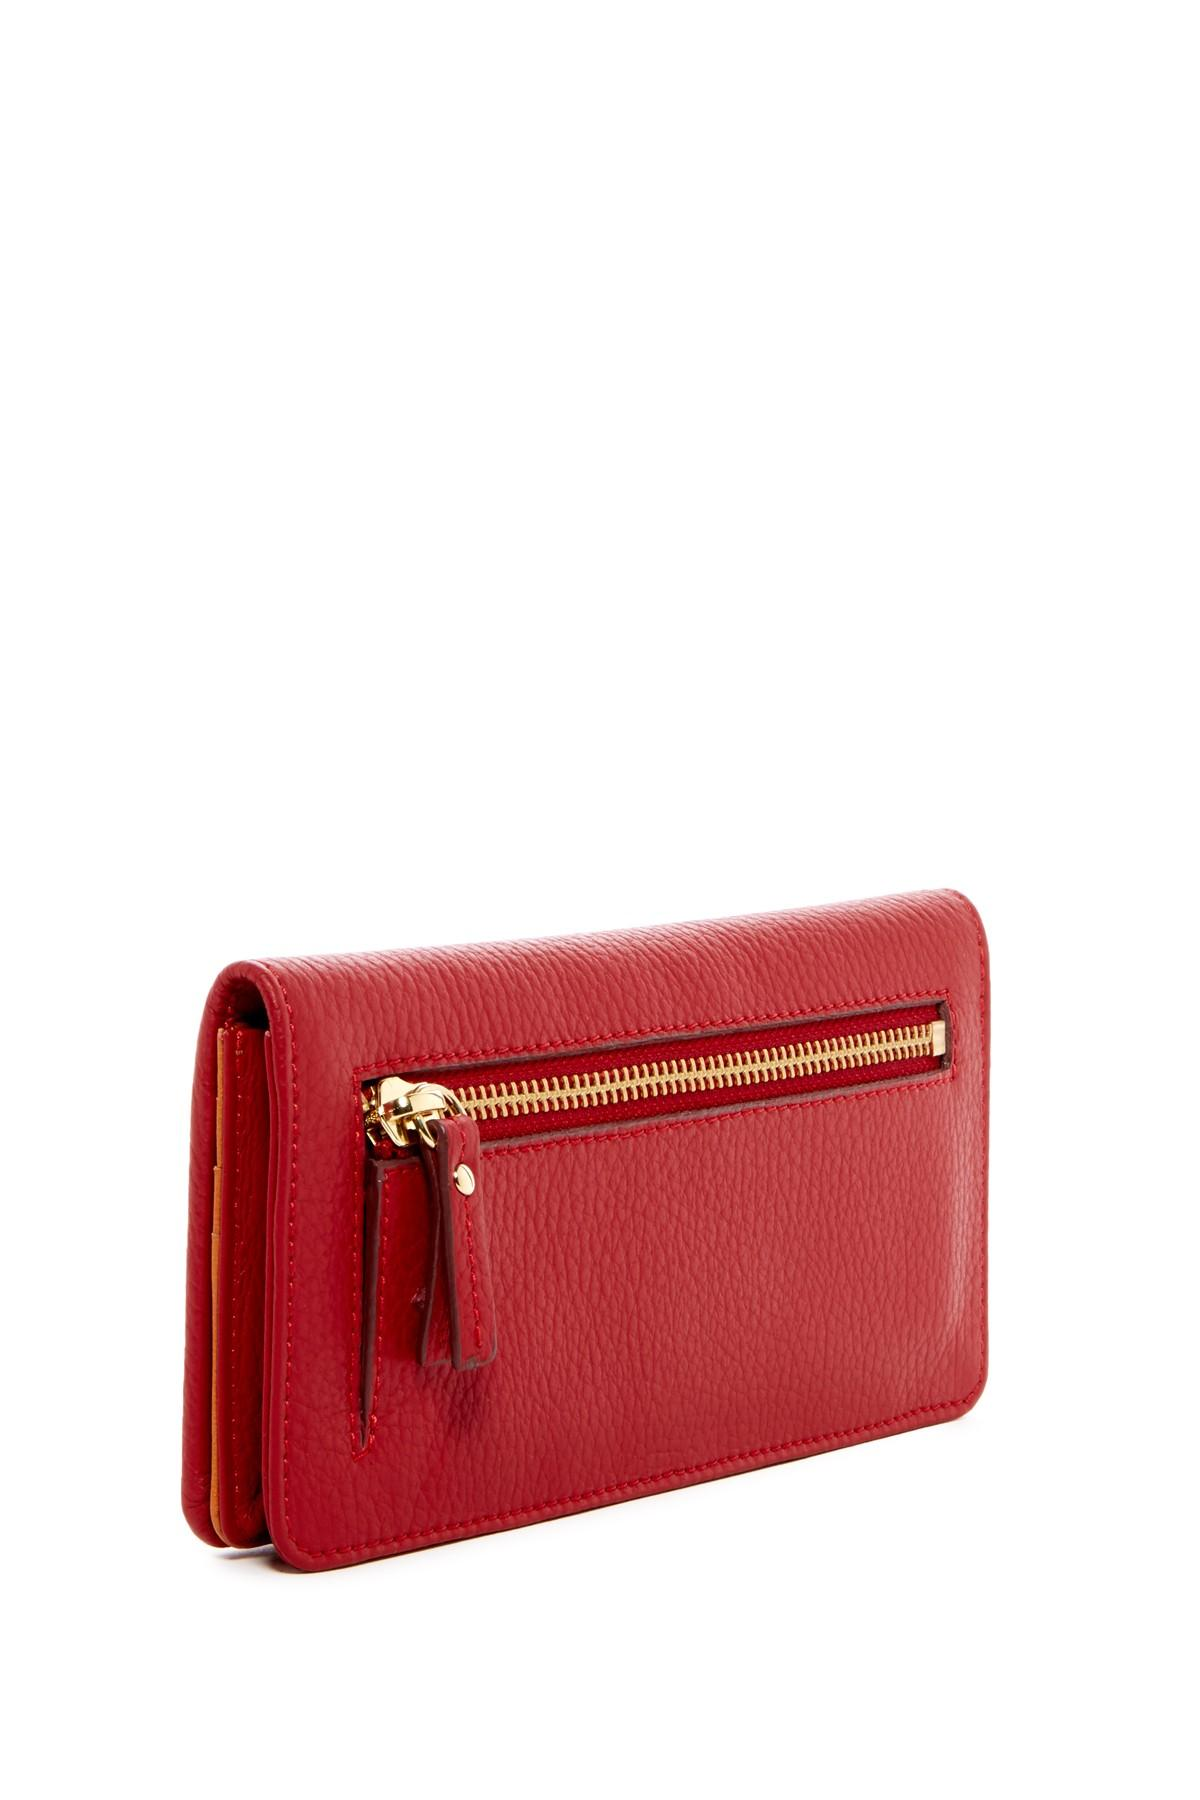 Lyst Tusk Gusseted Clutch Leather Wallet In Red